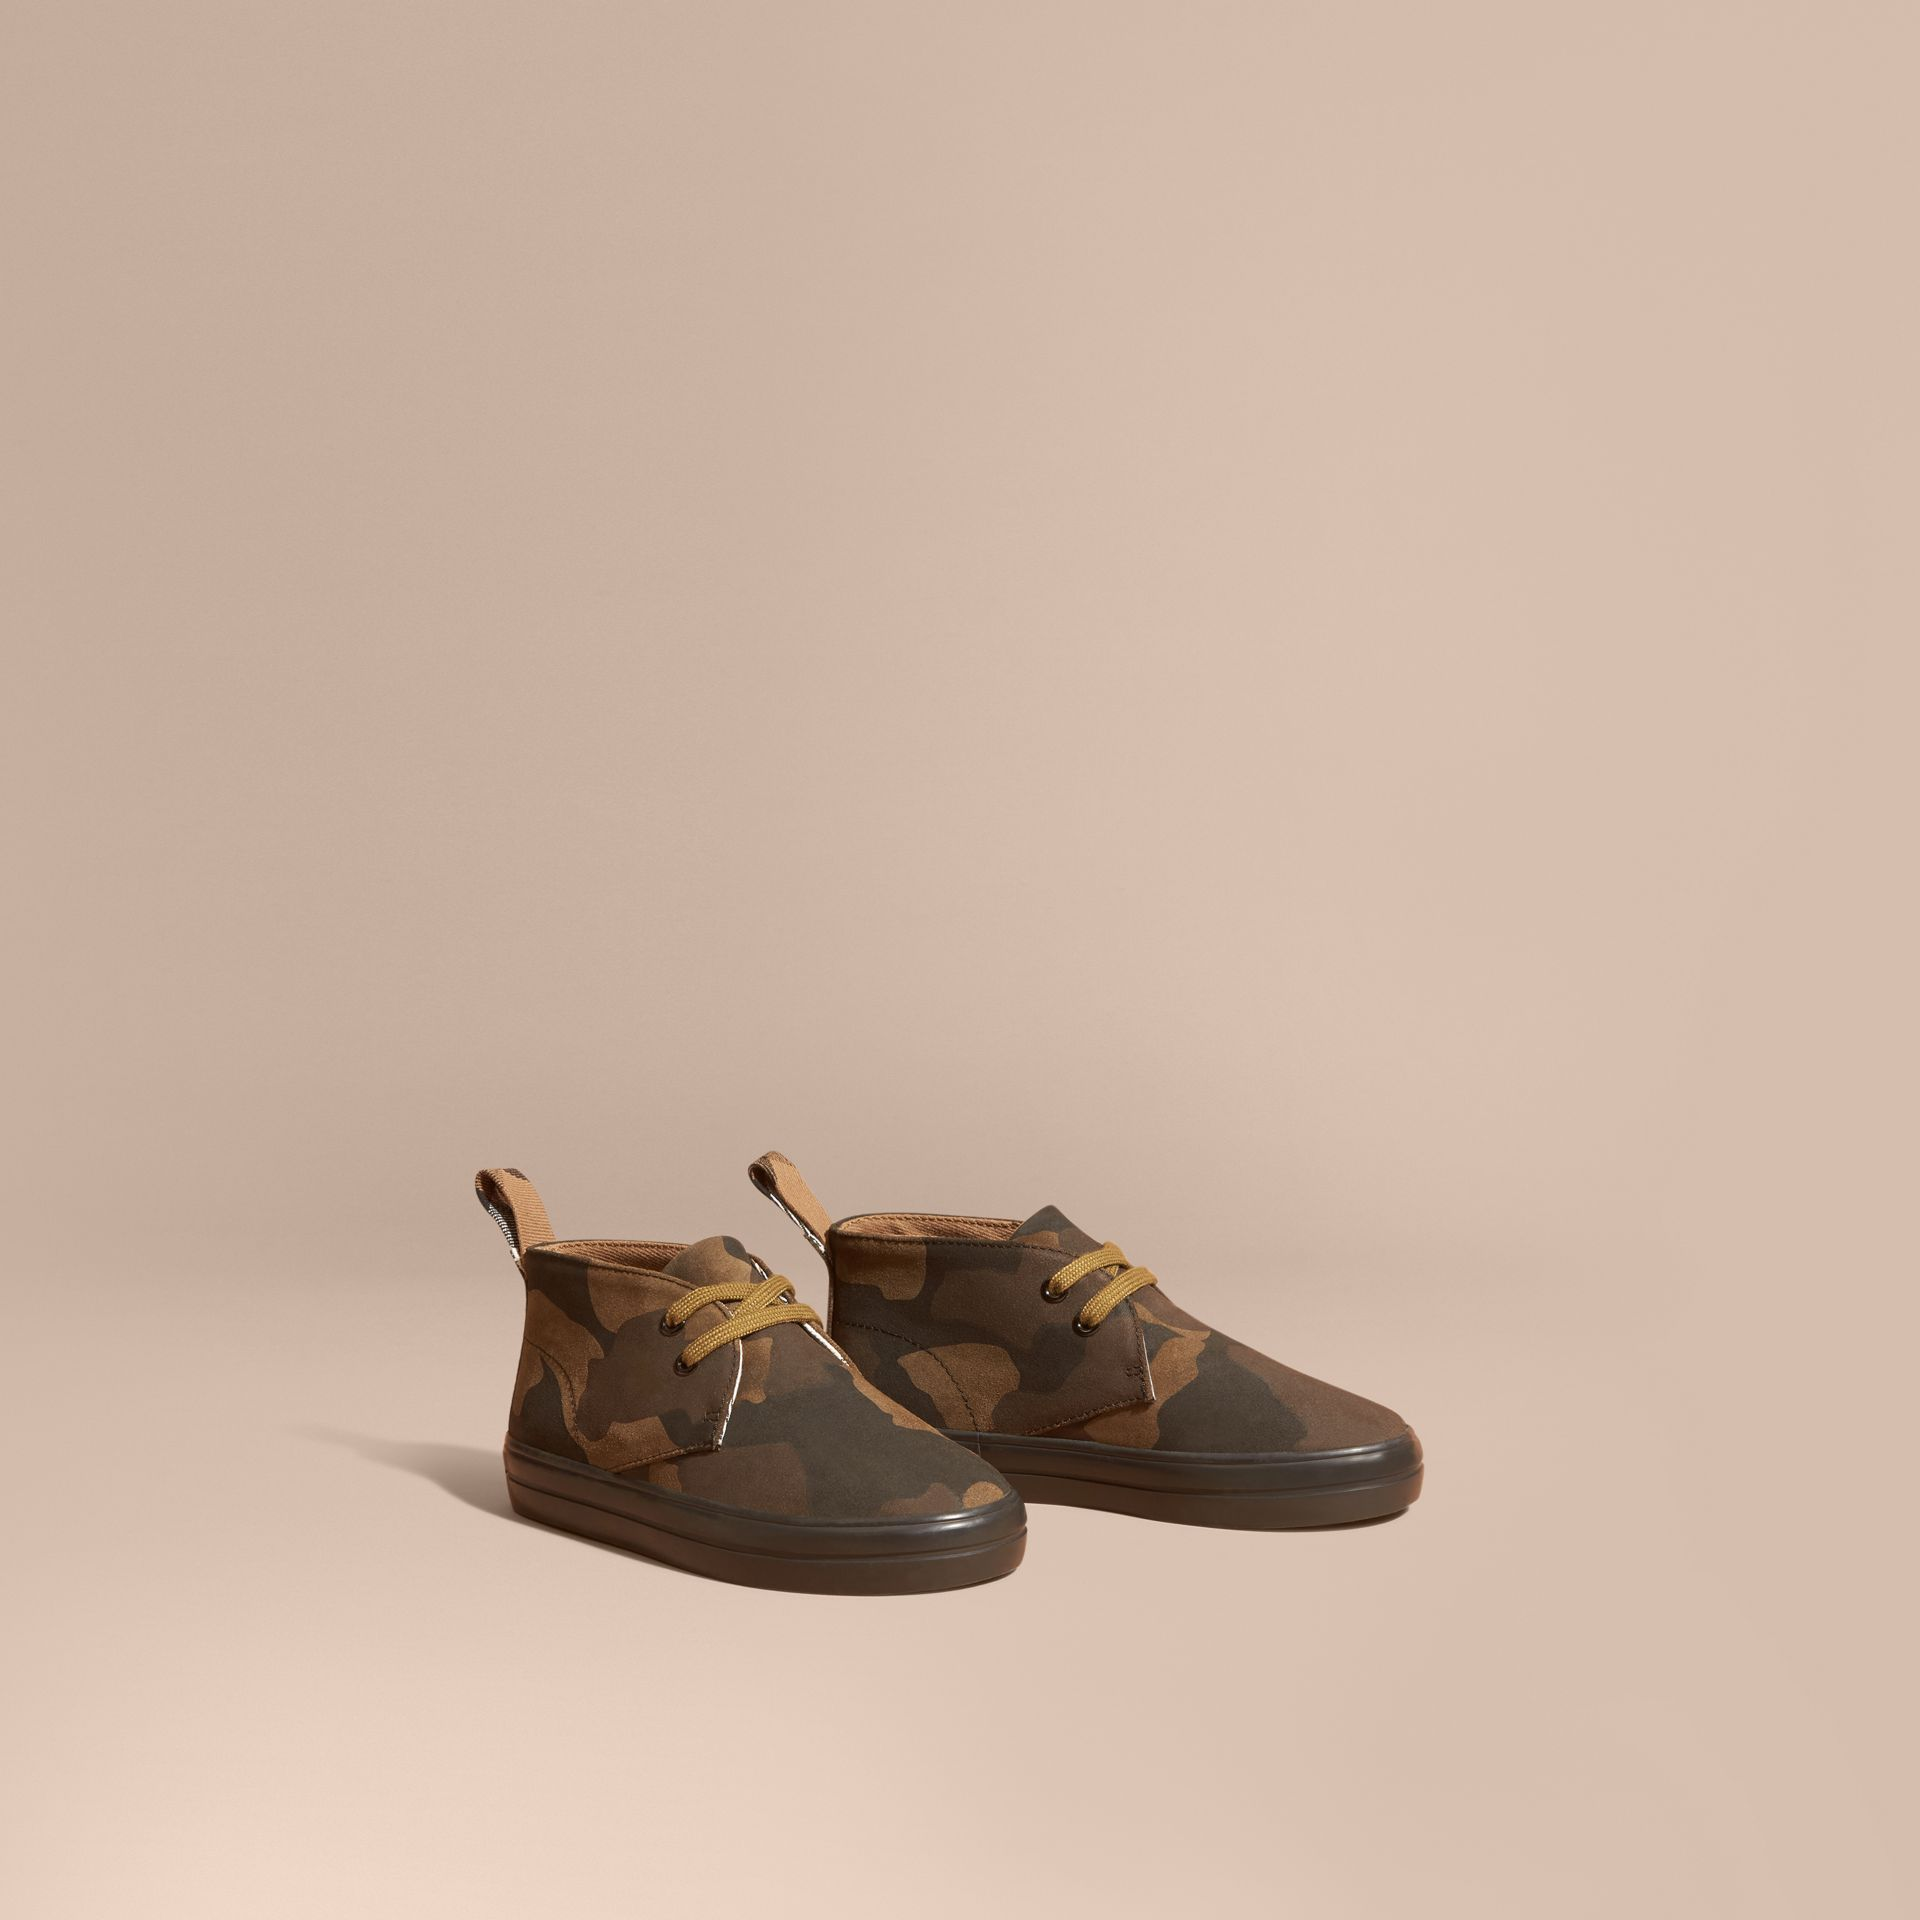 Dark green ochre Camouflage Print Suede Lace-up Desert Boots - gallery image 1